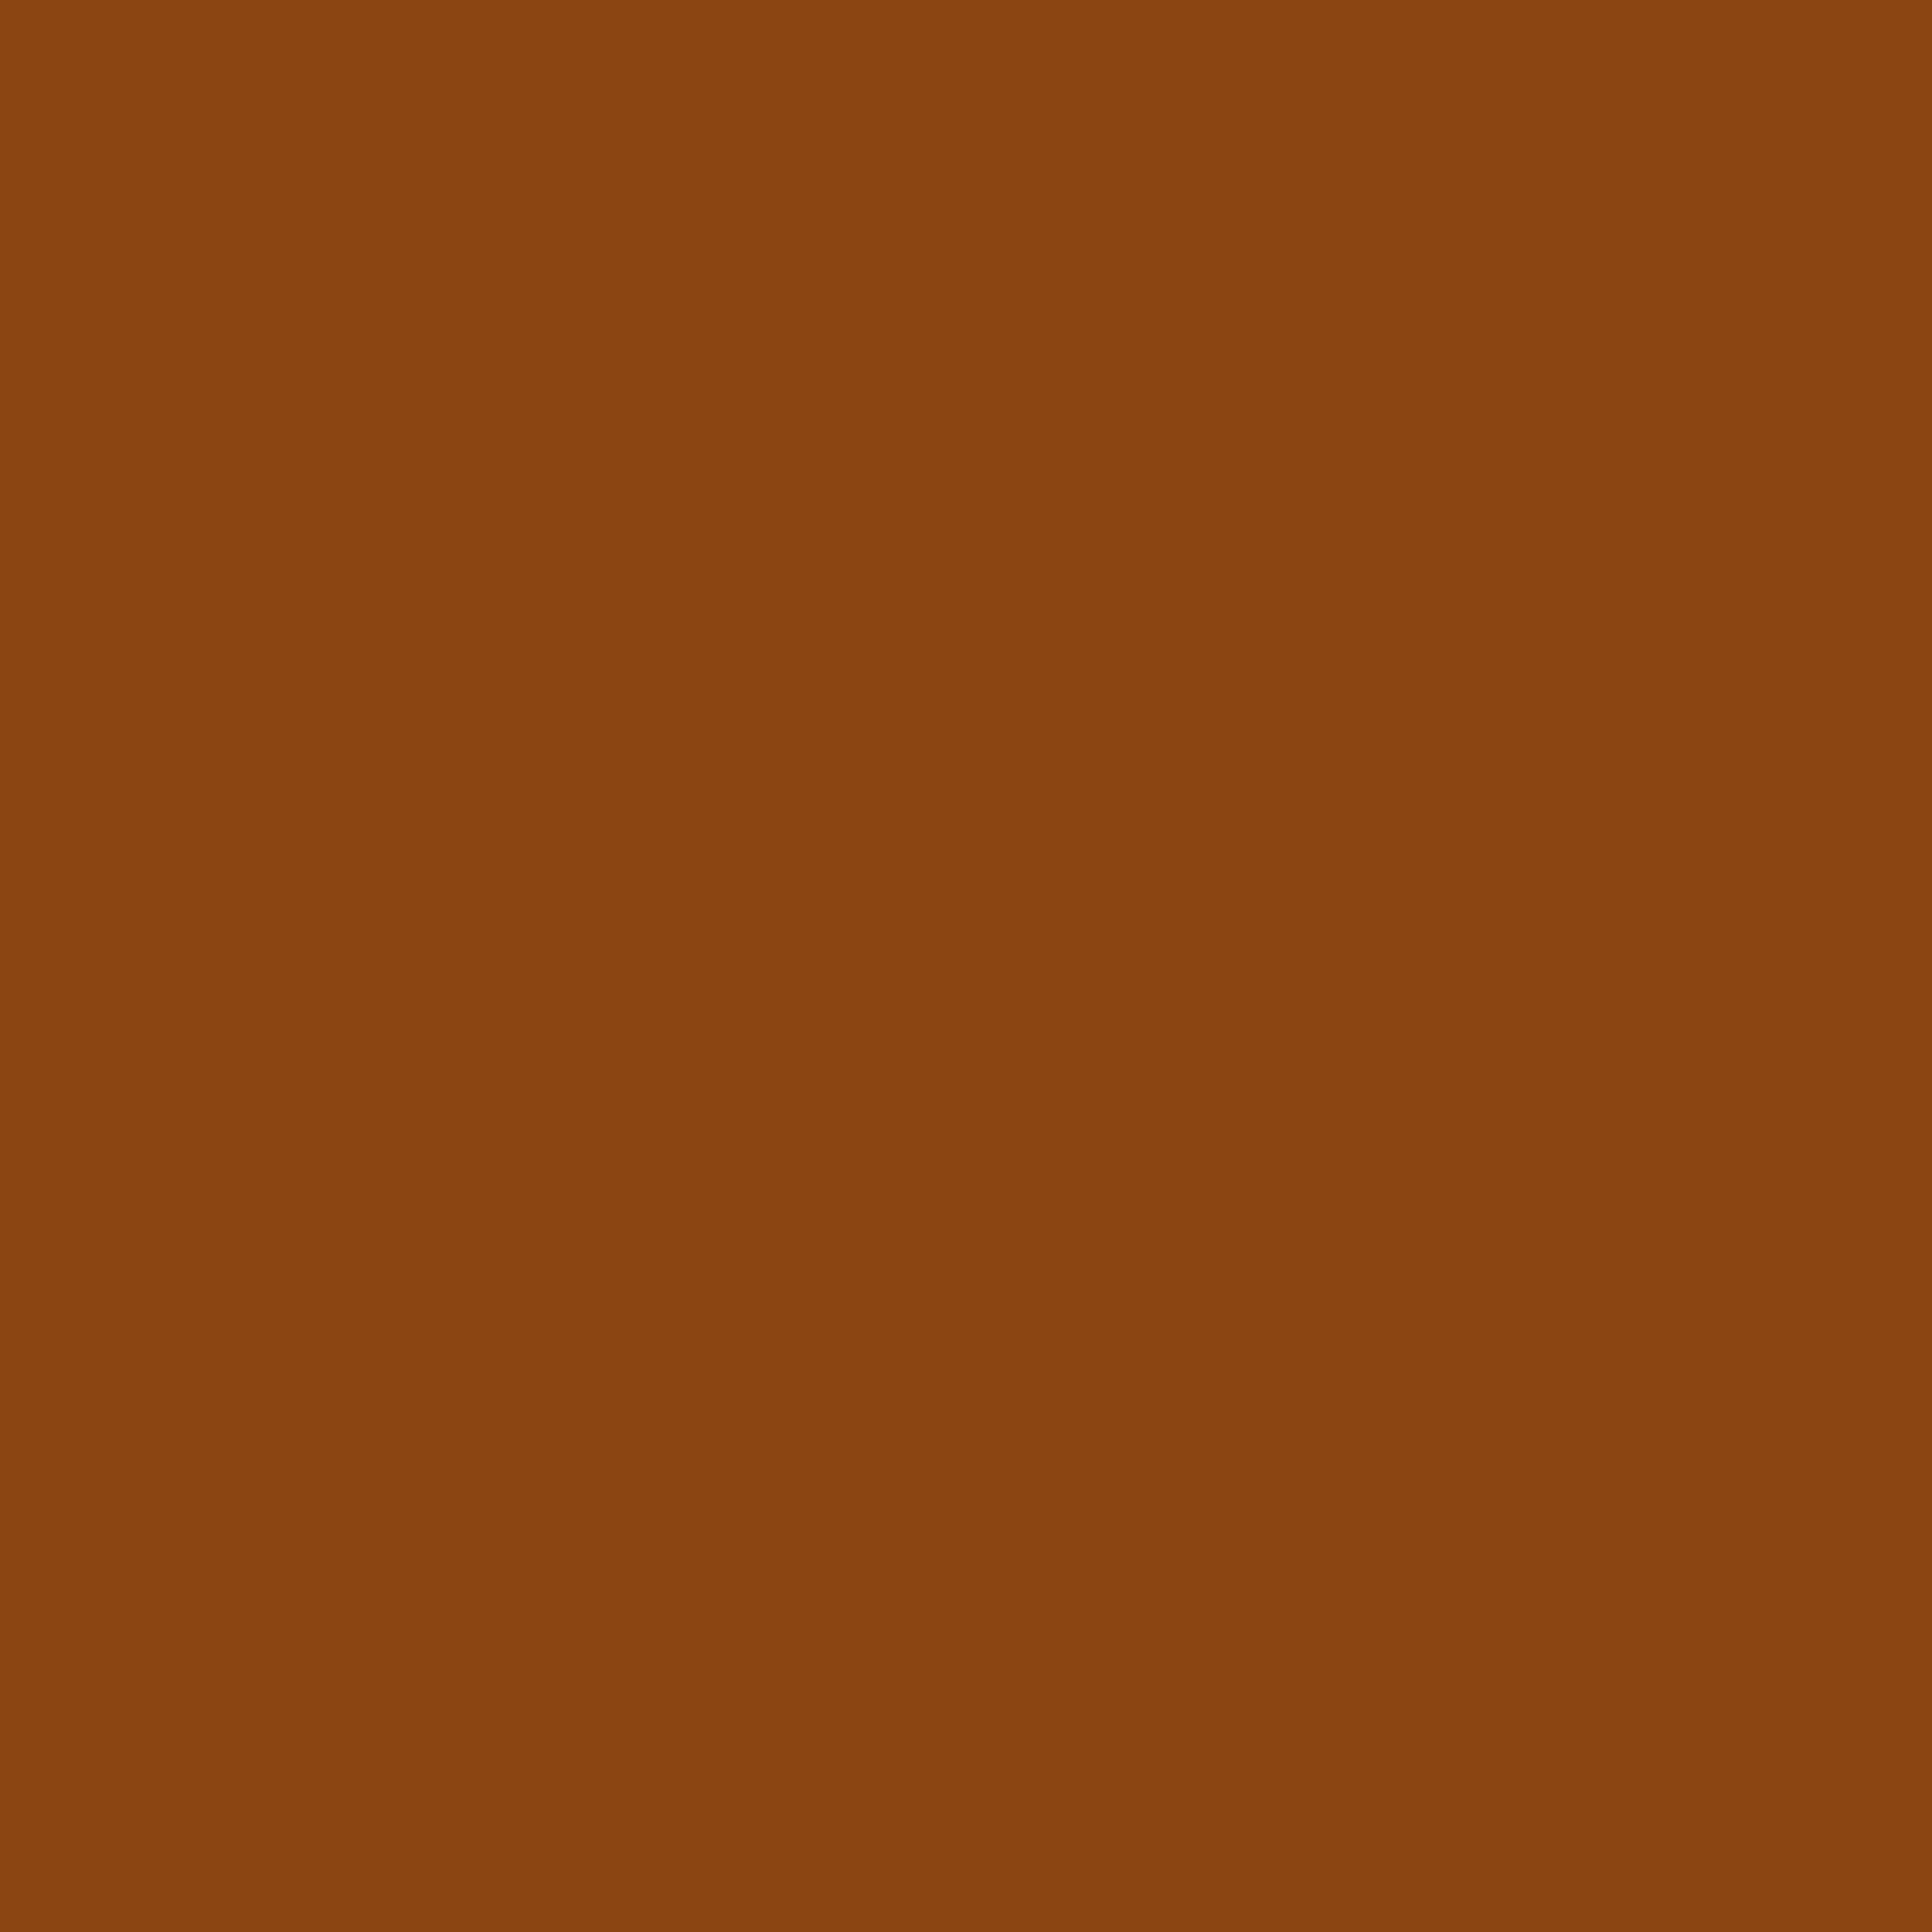 2048x2048 Saddle Brown Solid Color Background